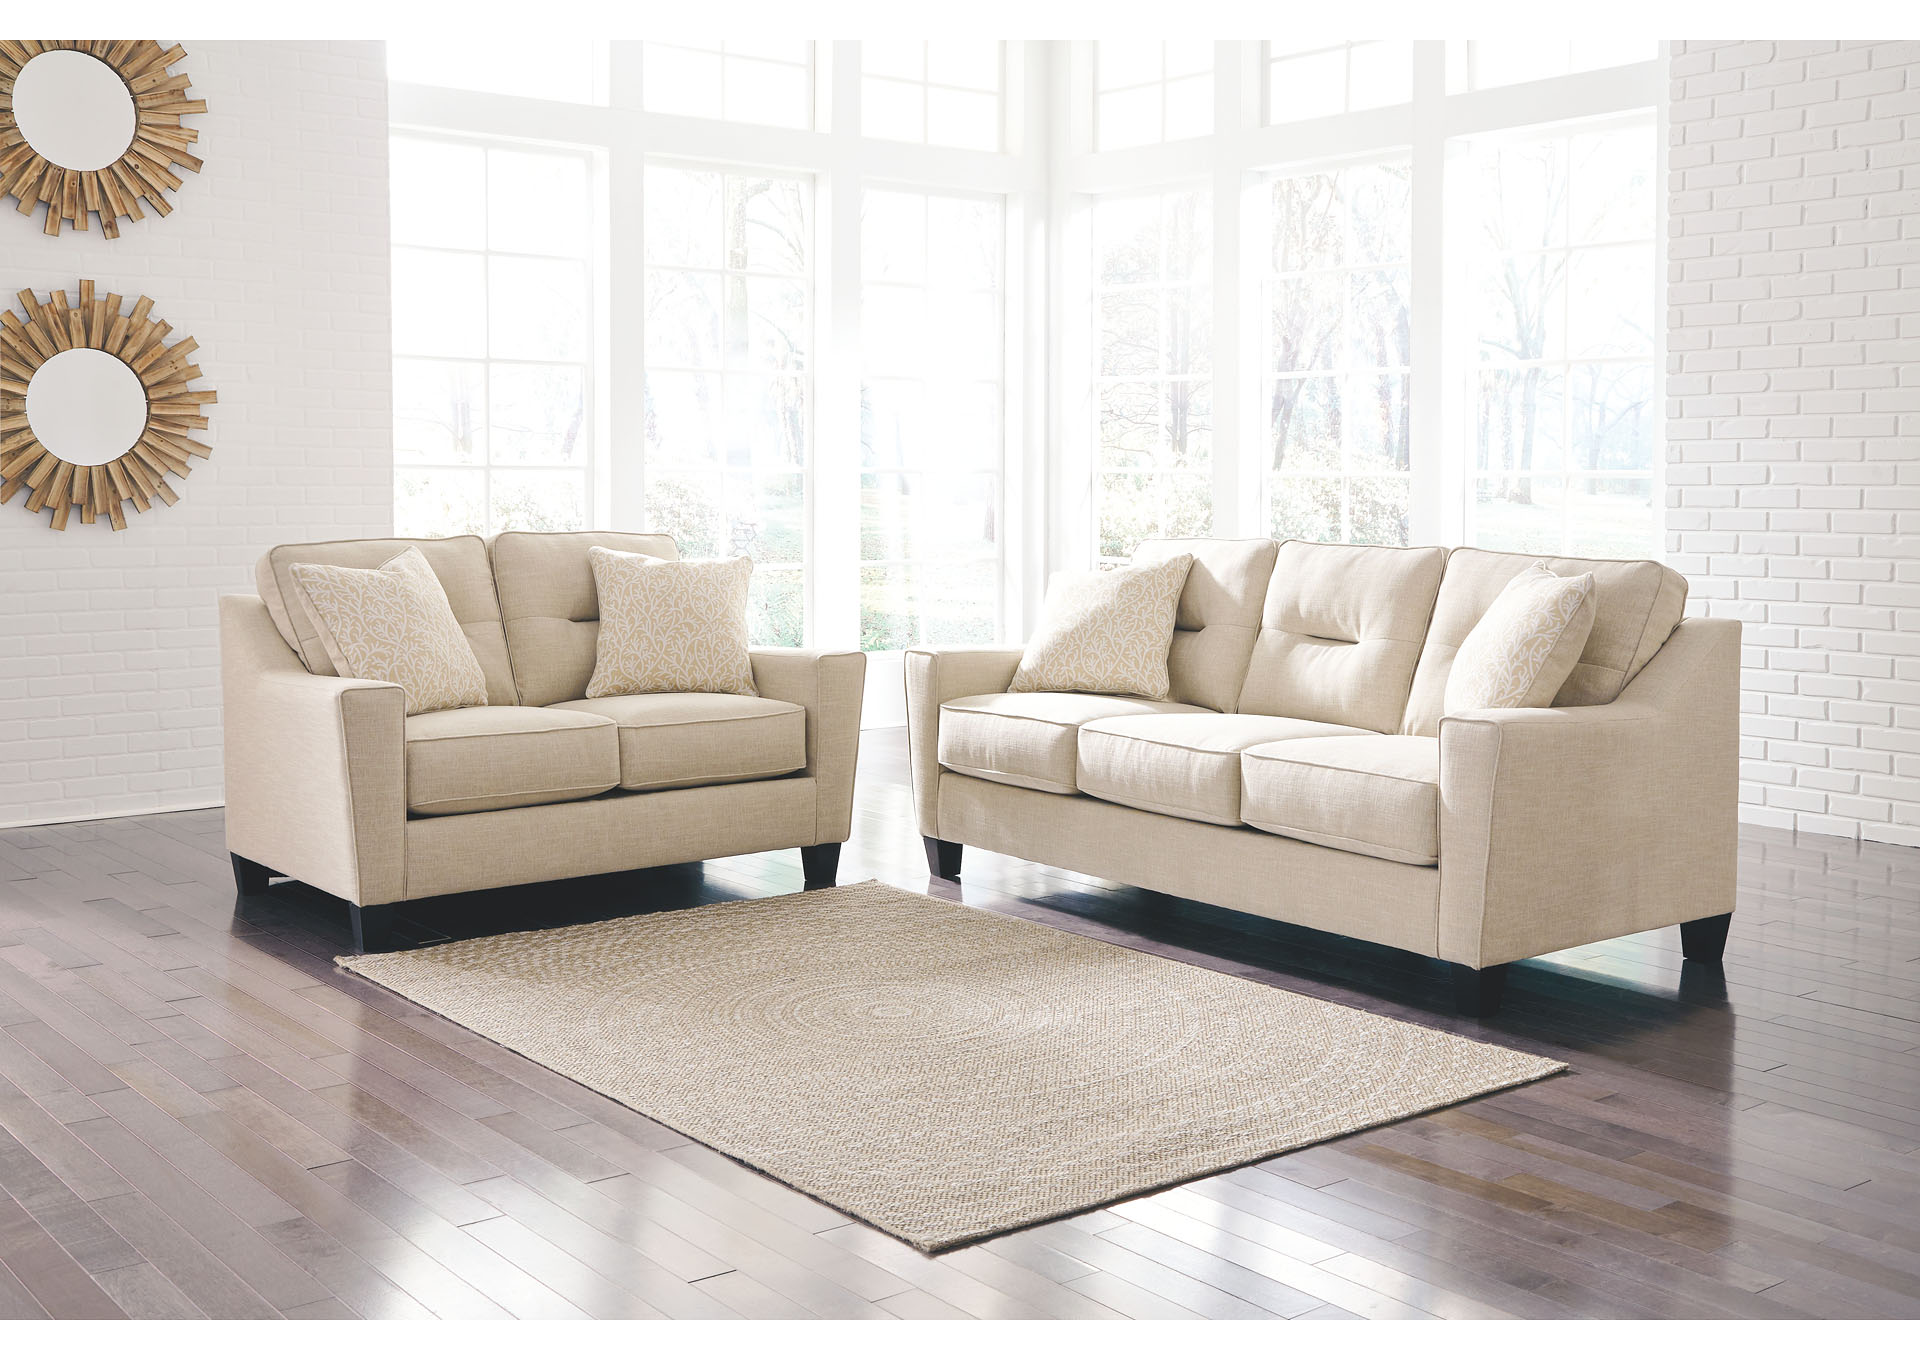 Forsan Nuvella Sand Sofa And Loveseat,Benchcraft